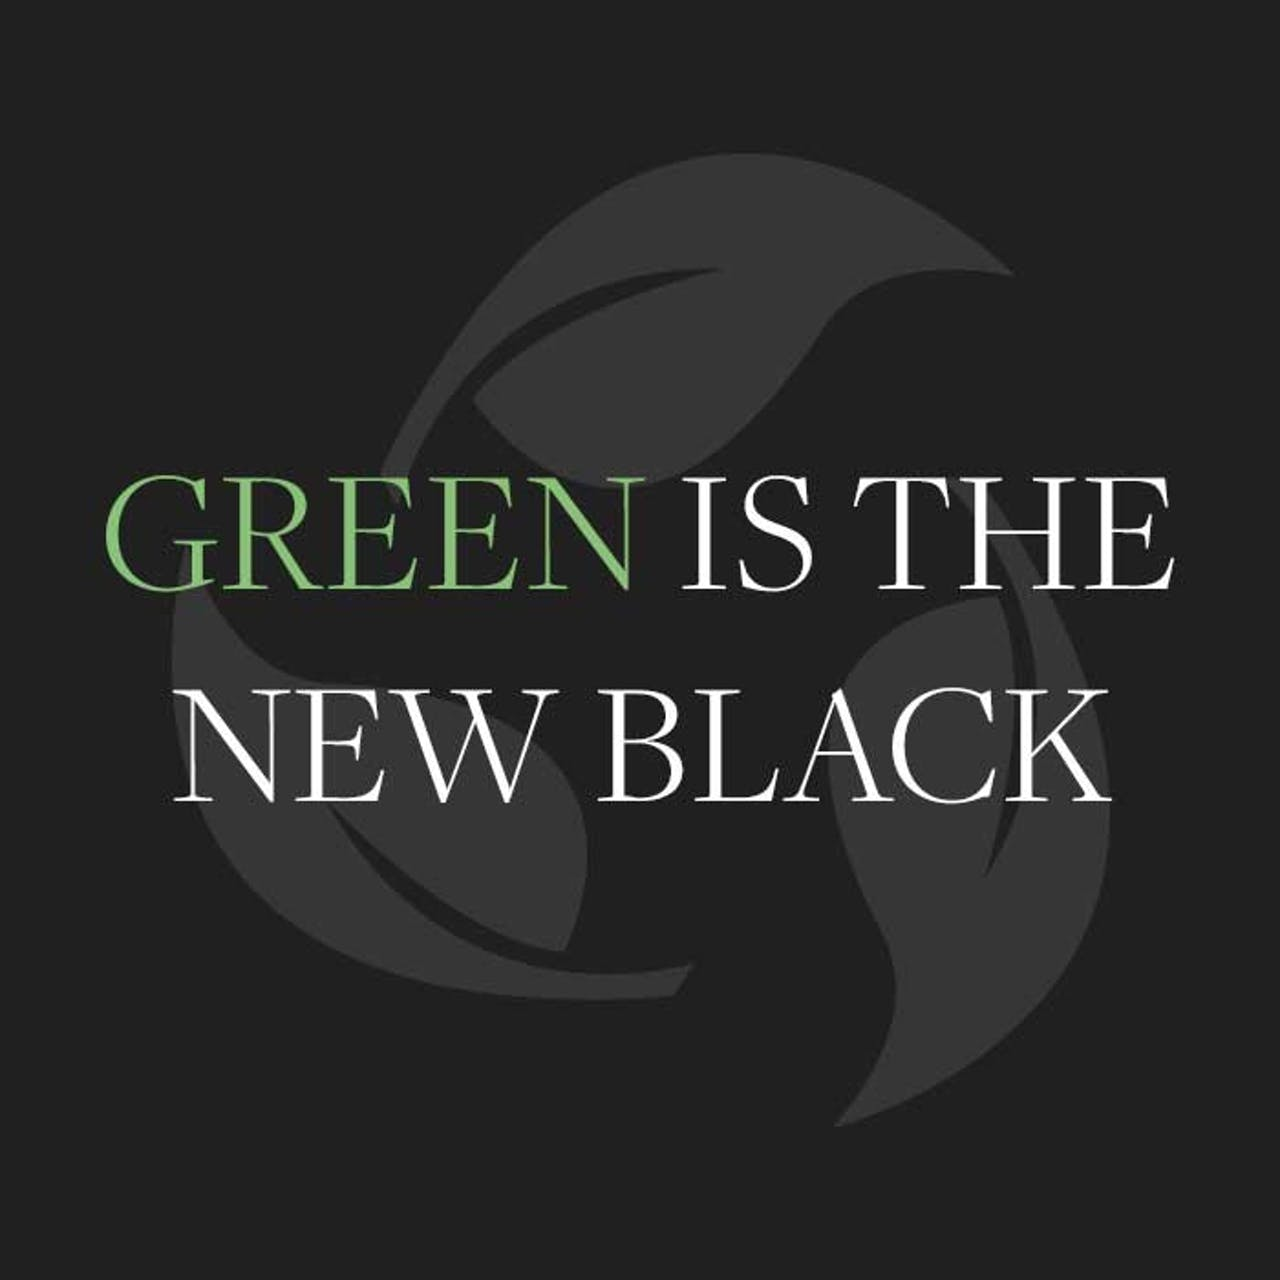 Green is the New black text and recycling icon